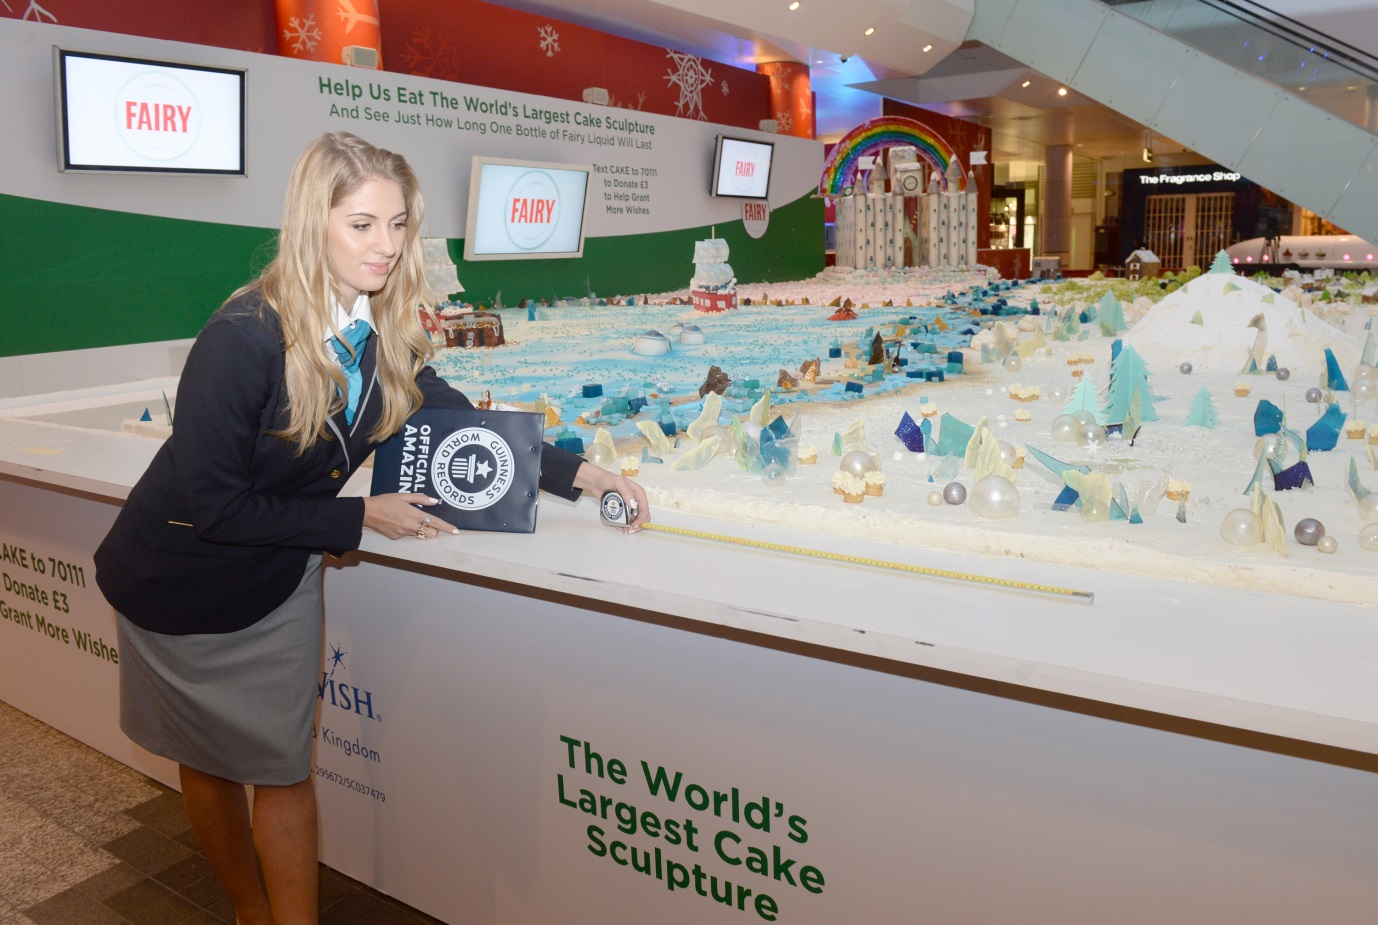 Fairy_brand_experience_worlds_largest_cake_sculpture_3